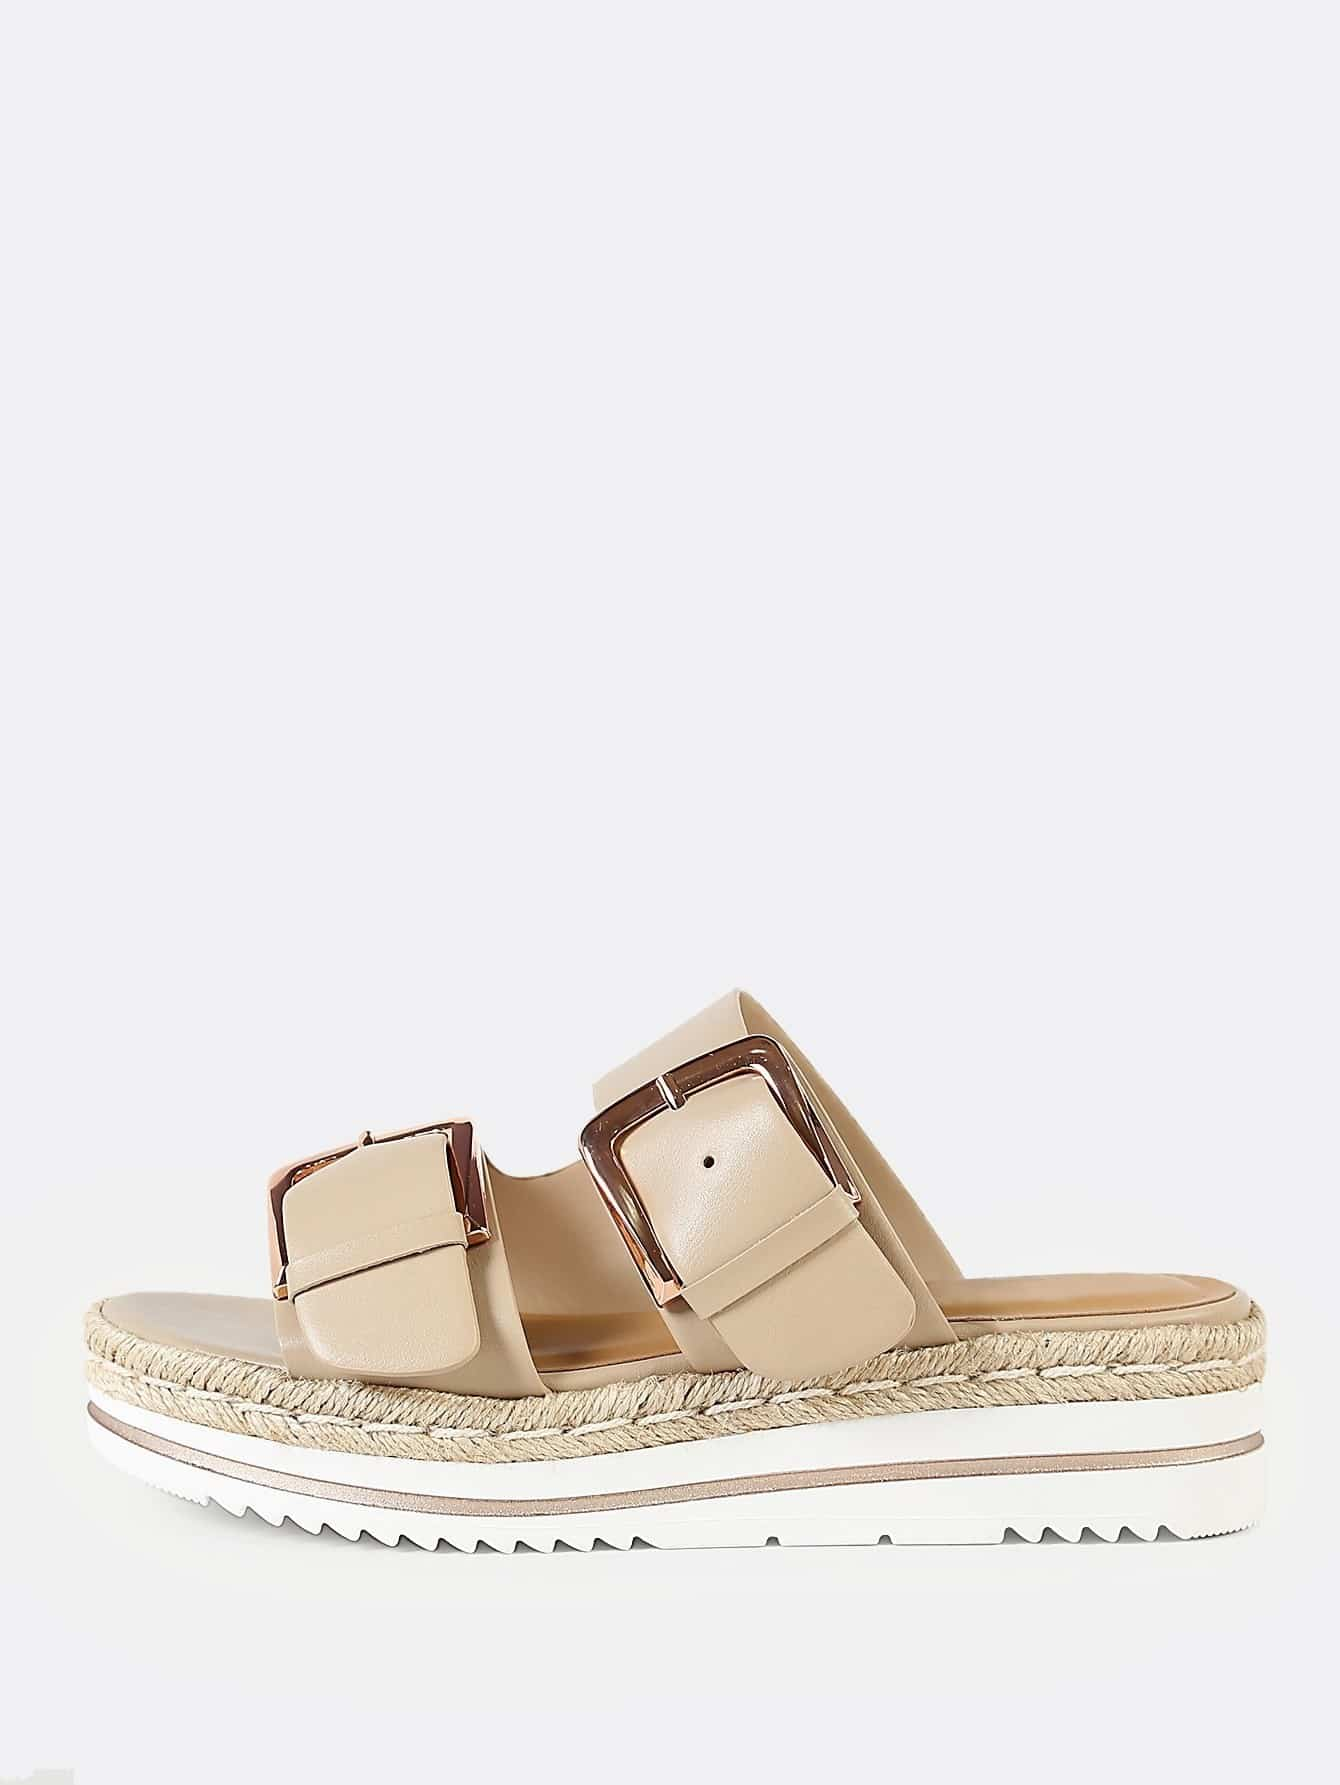 0a2a65f0a876 Espadrille trim double buckle footbed flatform sandal nude jpg 1340x1785  Double strap buckle flatform sandals